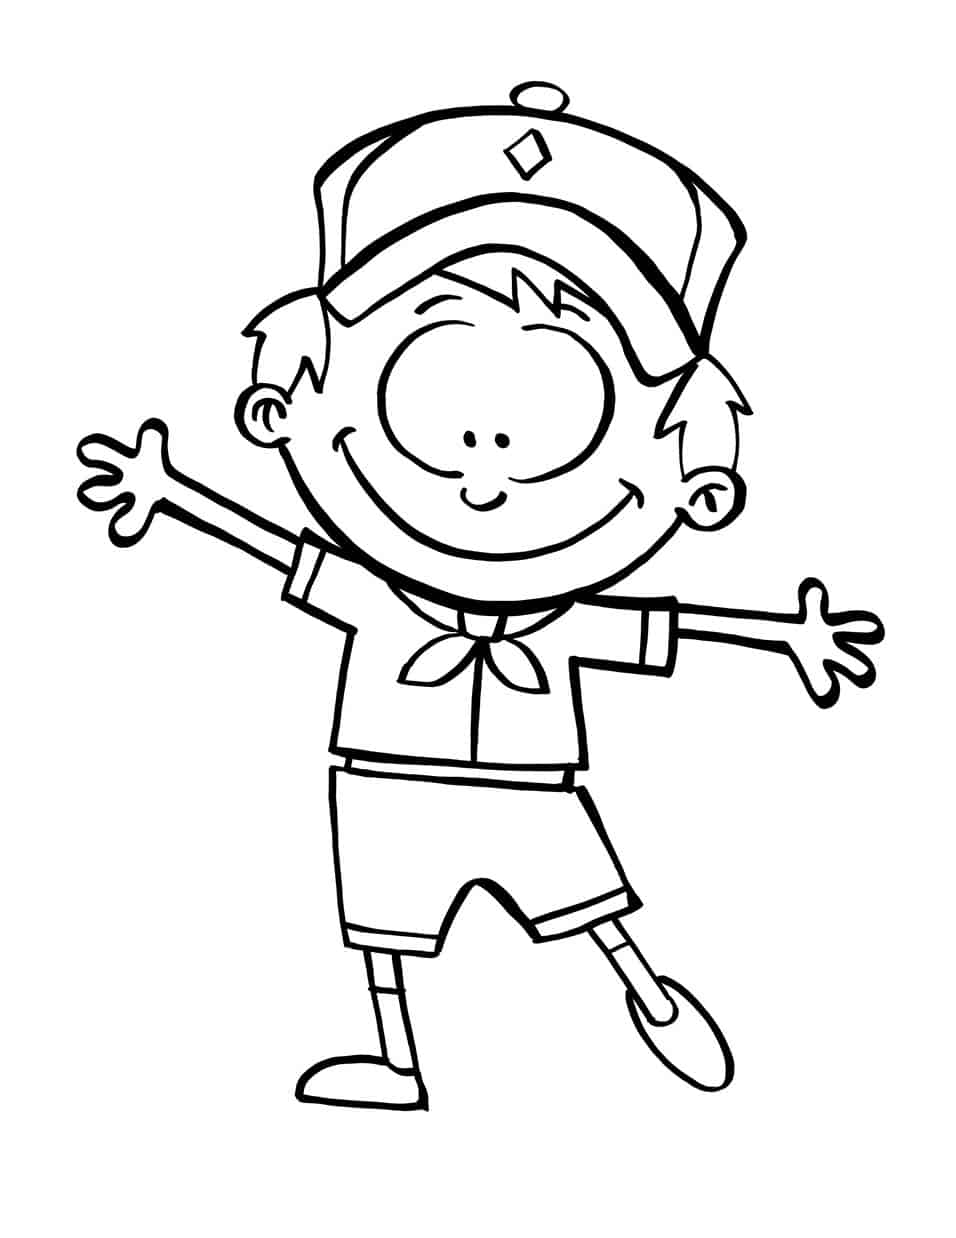 Flat Stanley Coloring Pages | telefonverzeichnis.me | 1238x956